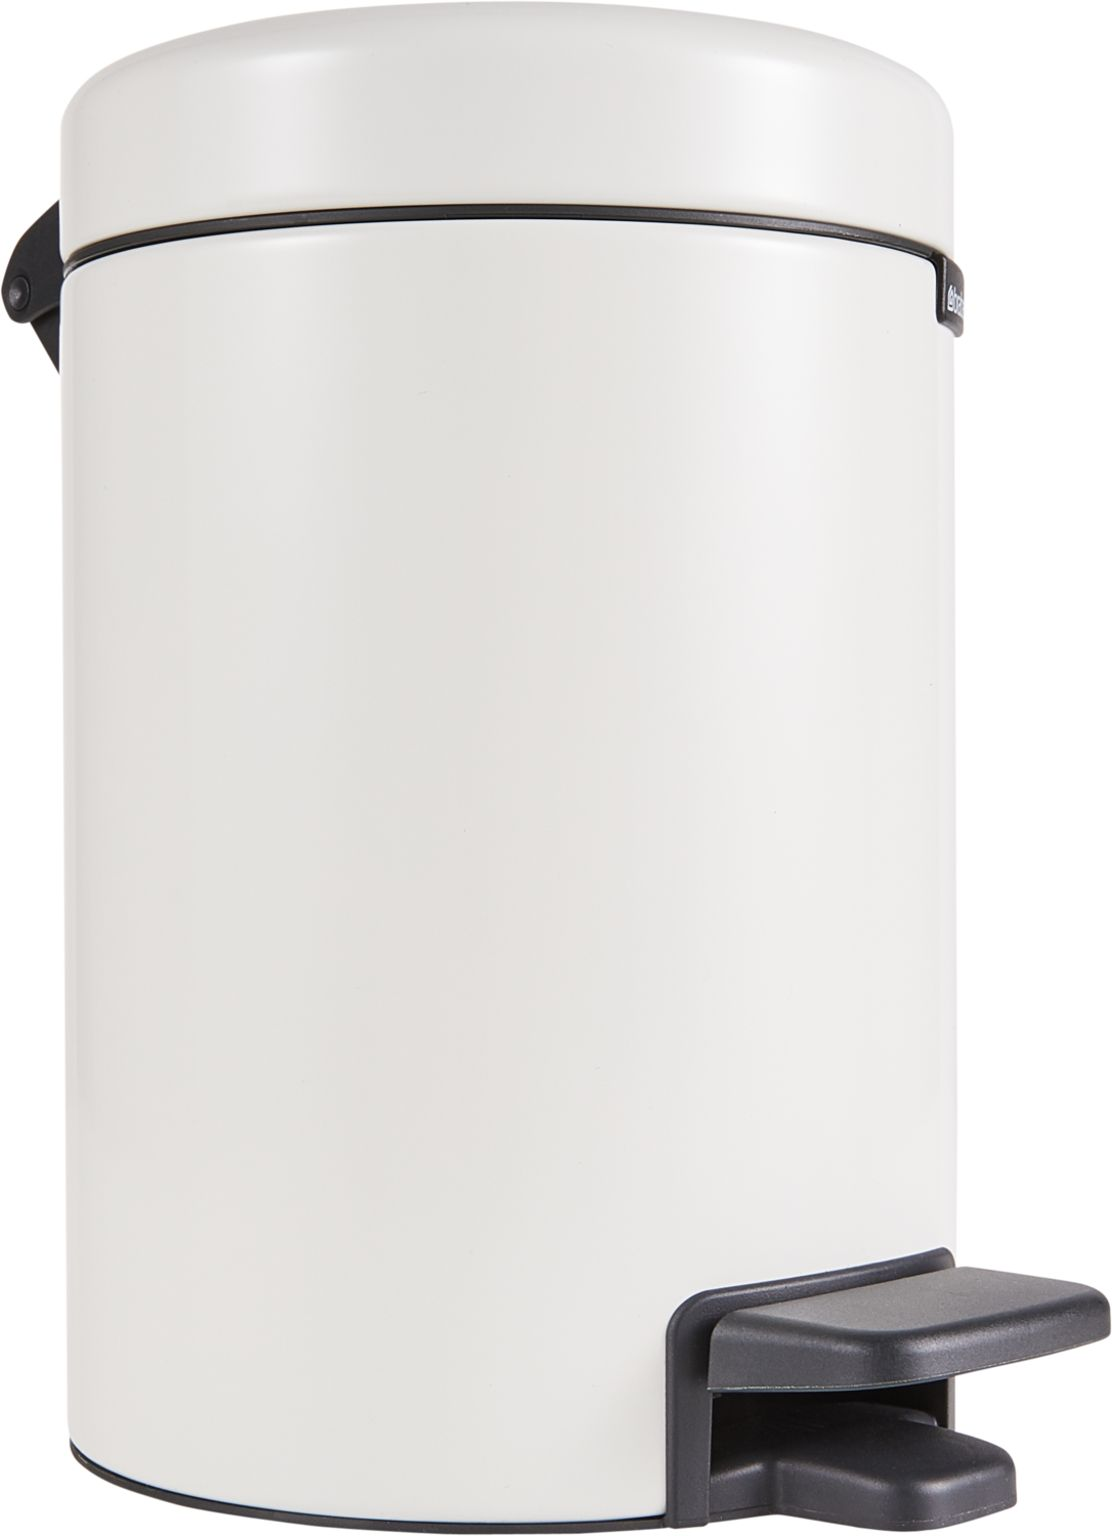 Image of BRABANTIA Treteimer New Icon